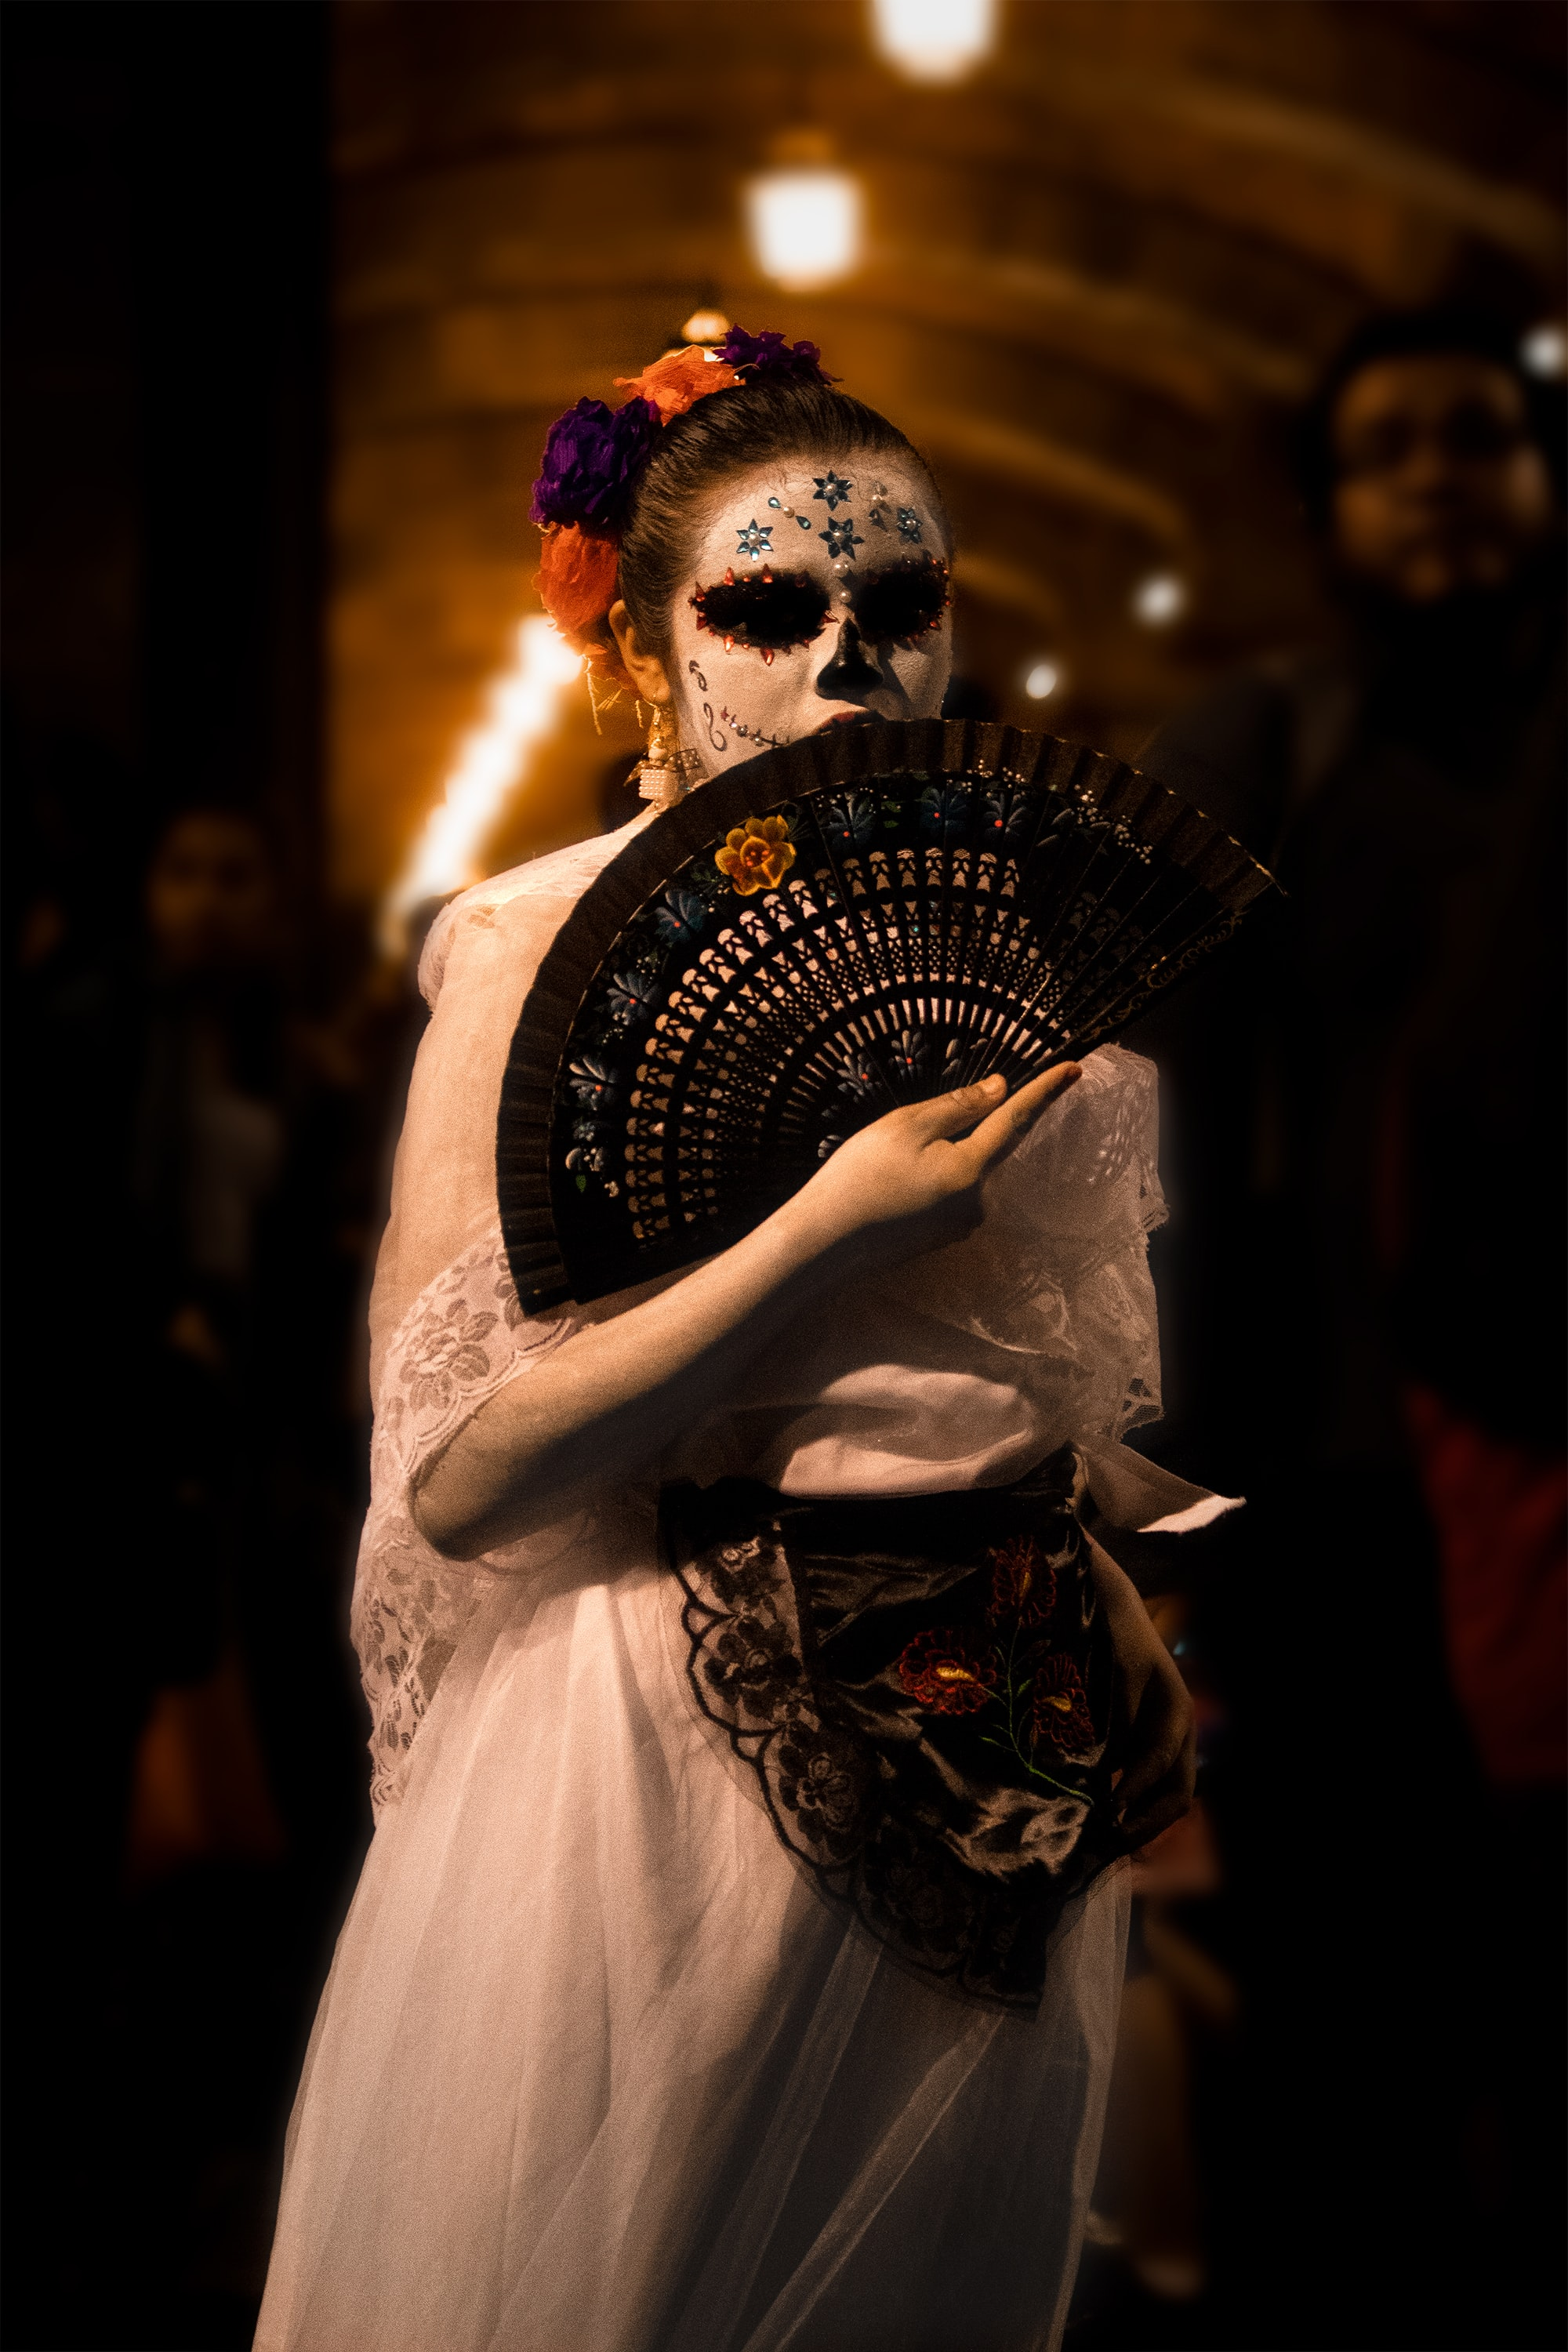 woman with Santa Muerte face makeup